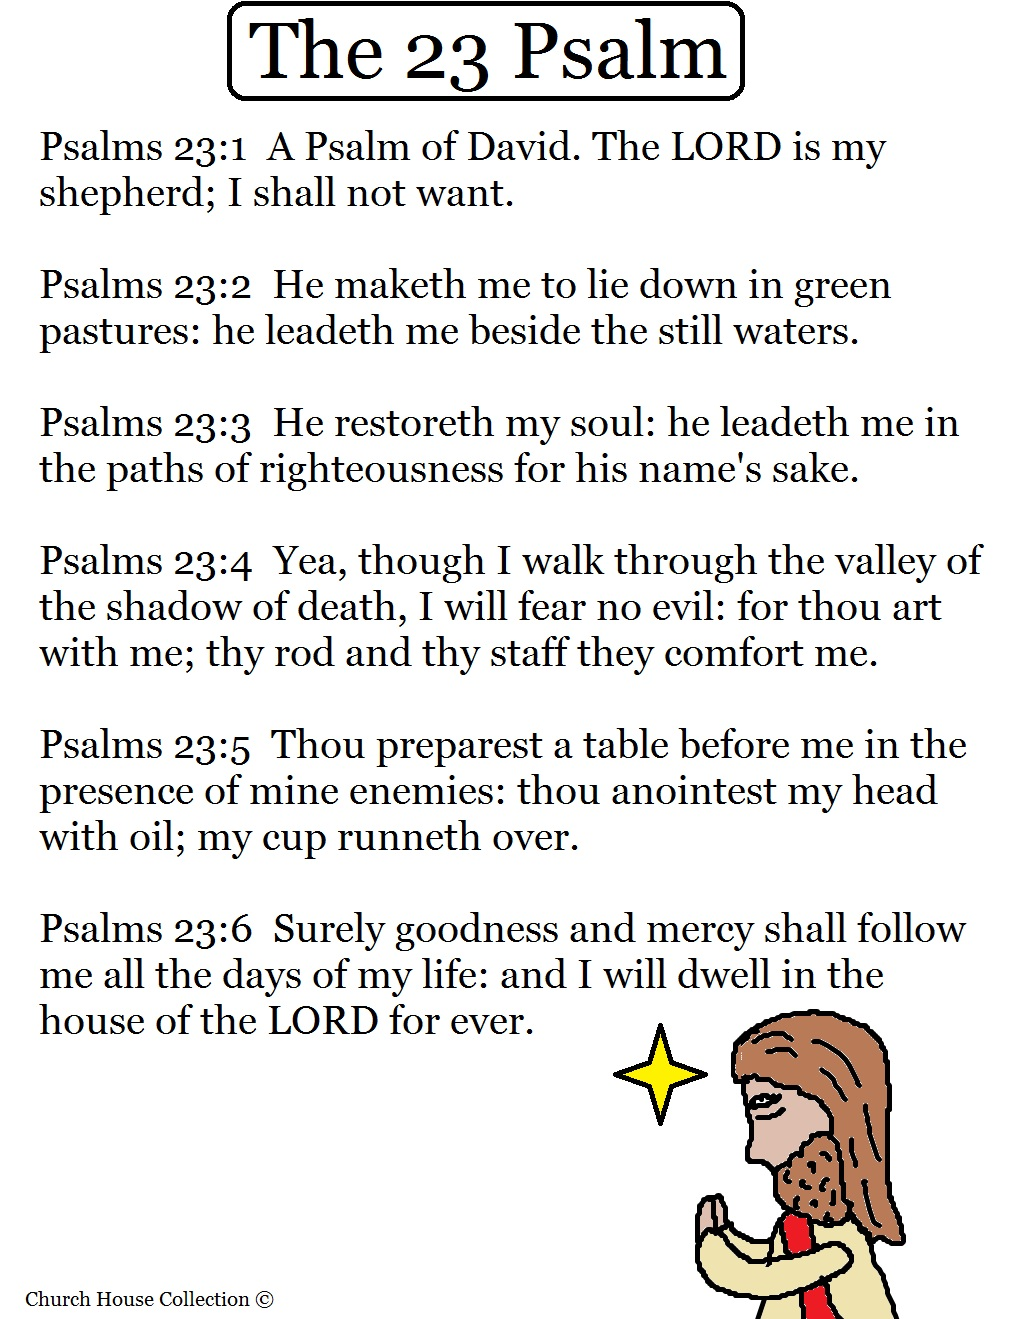 psalm 23 printable coloring pages - church house collection blog psalm 23 the lord is my